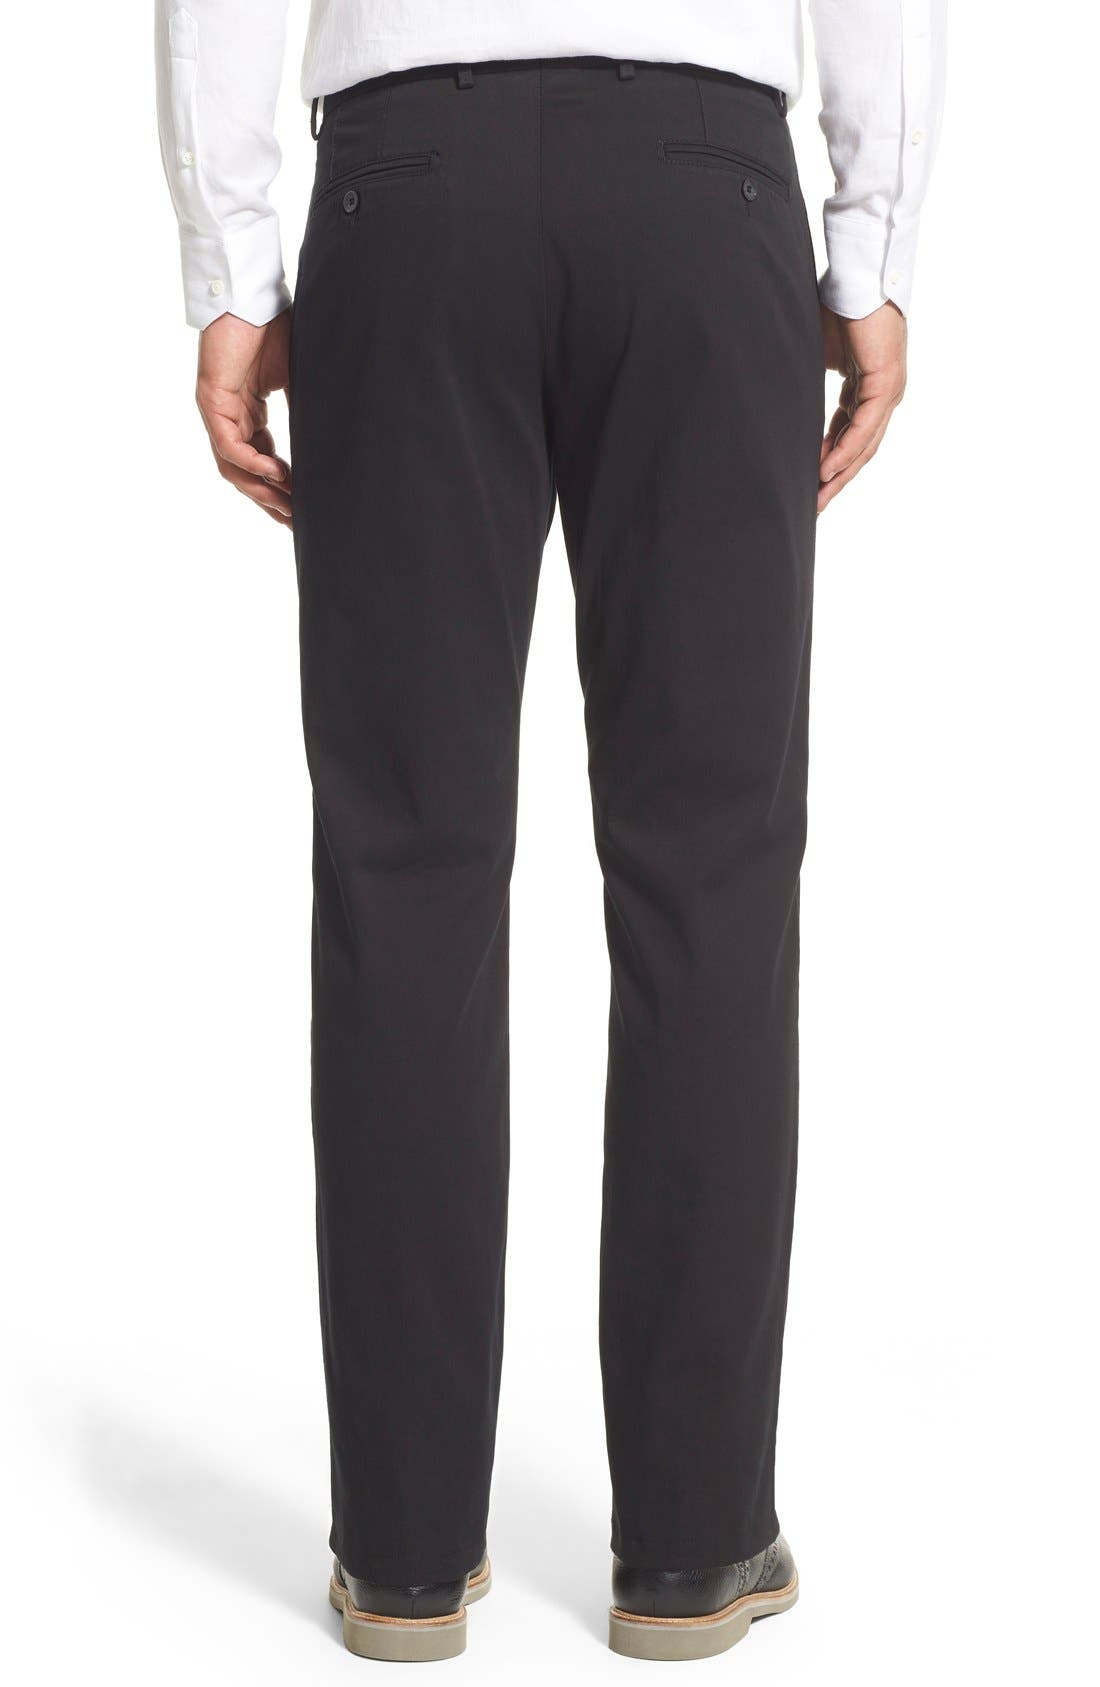 Atwater Cotton Twill Pants,                             Alternate thumbnail 2, color,                             001